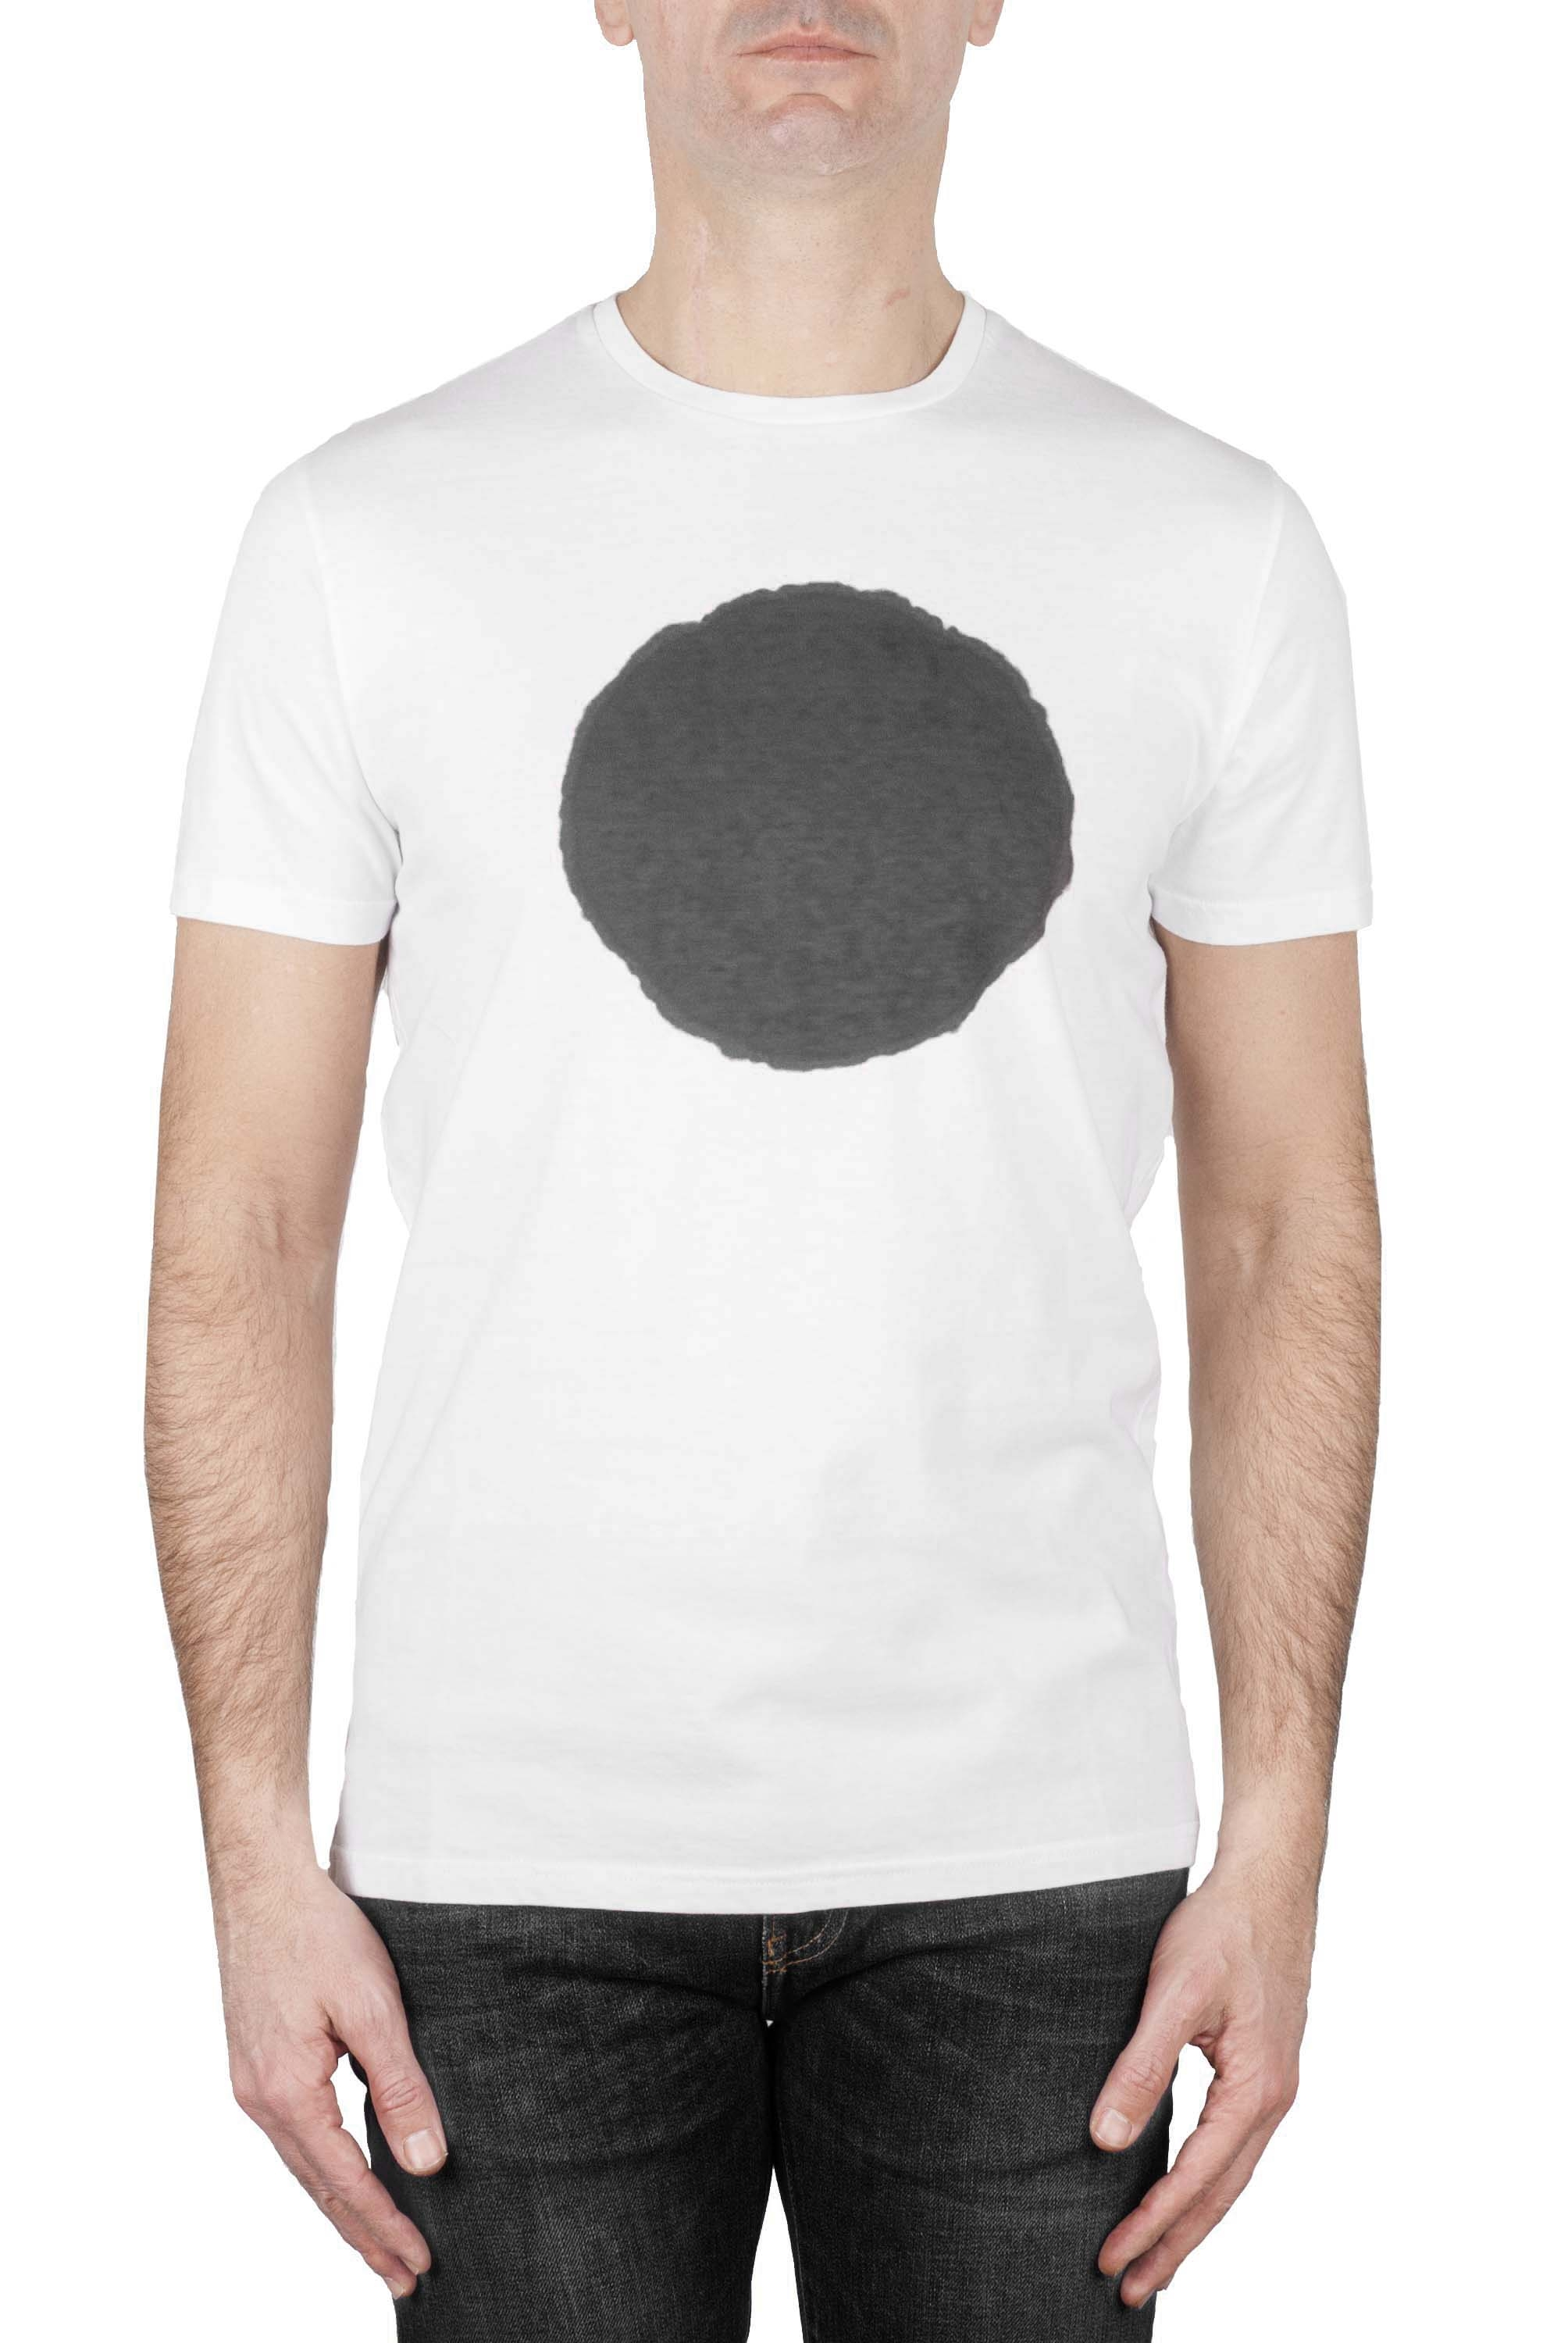 SBU 02845_2021SS Classic short sleeve cotton round neck t-shirt grey and white printed graphic 01